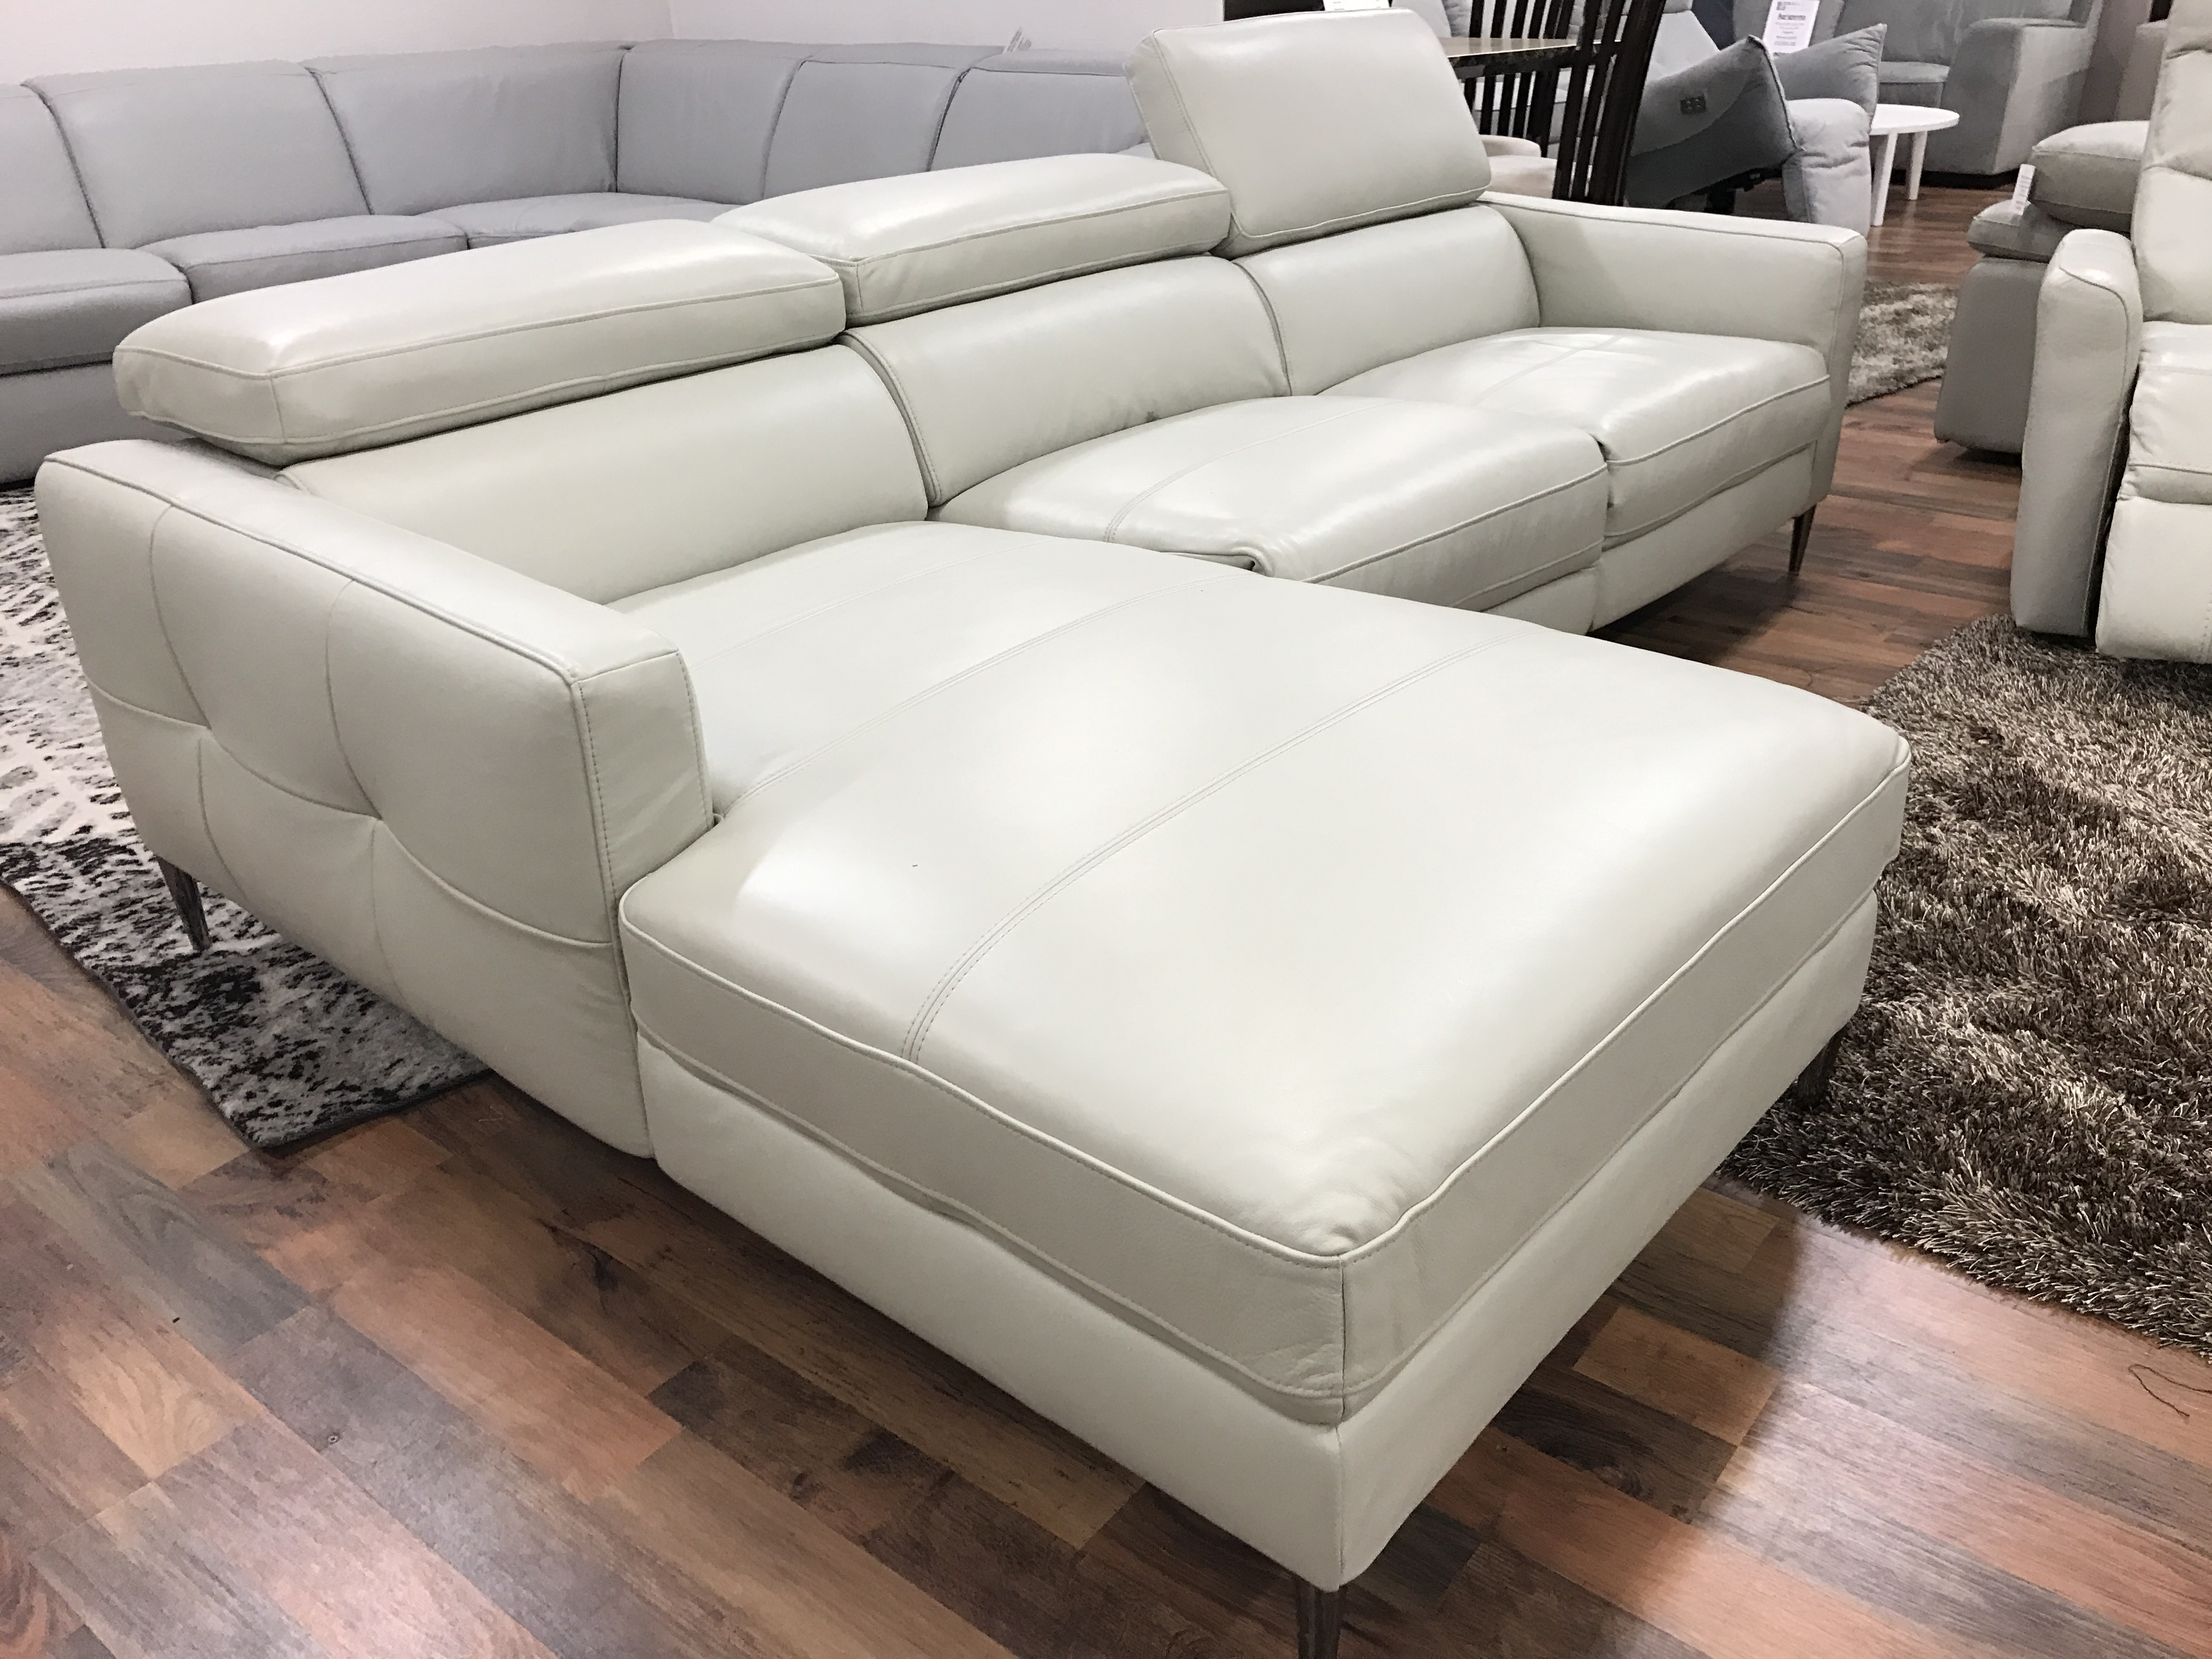 good quality sofa brands australia best color to paint a living room with brown mizzoni italia cyber high power reclining leather